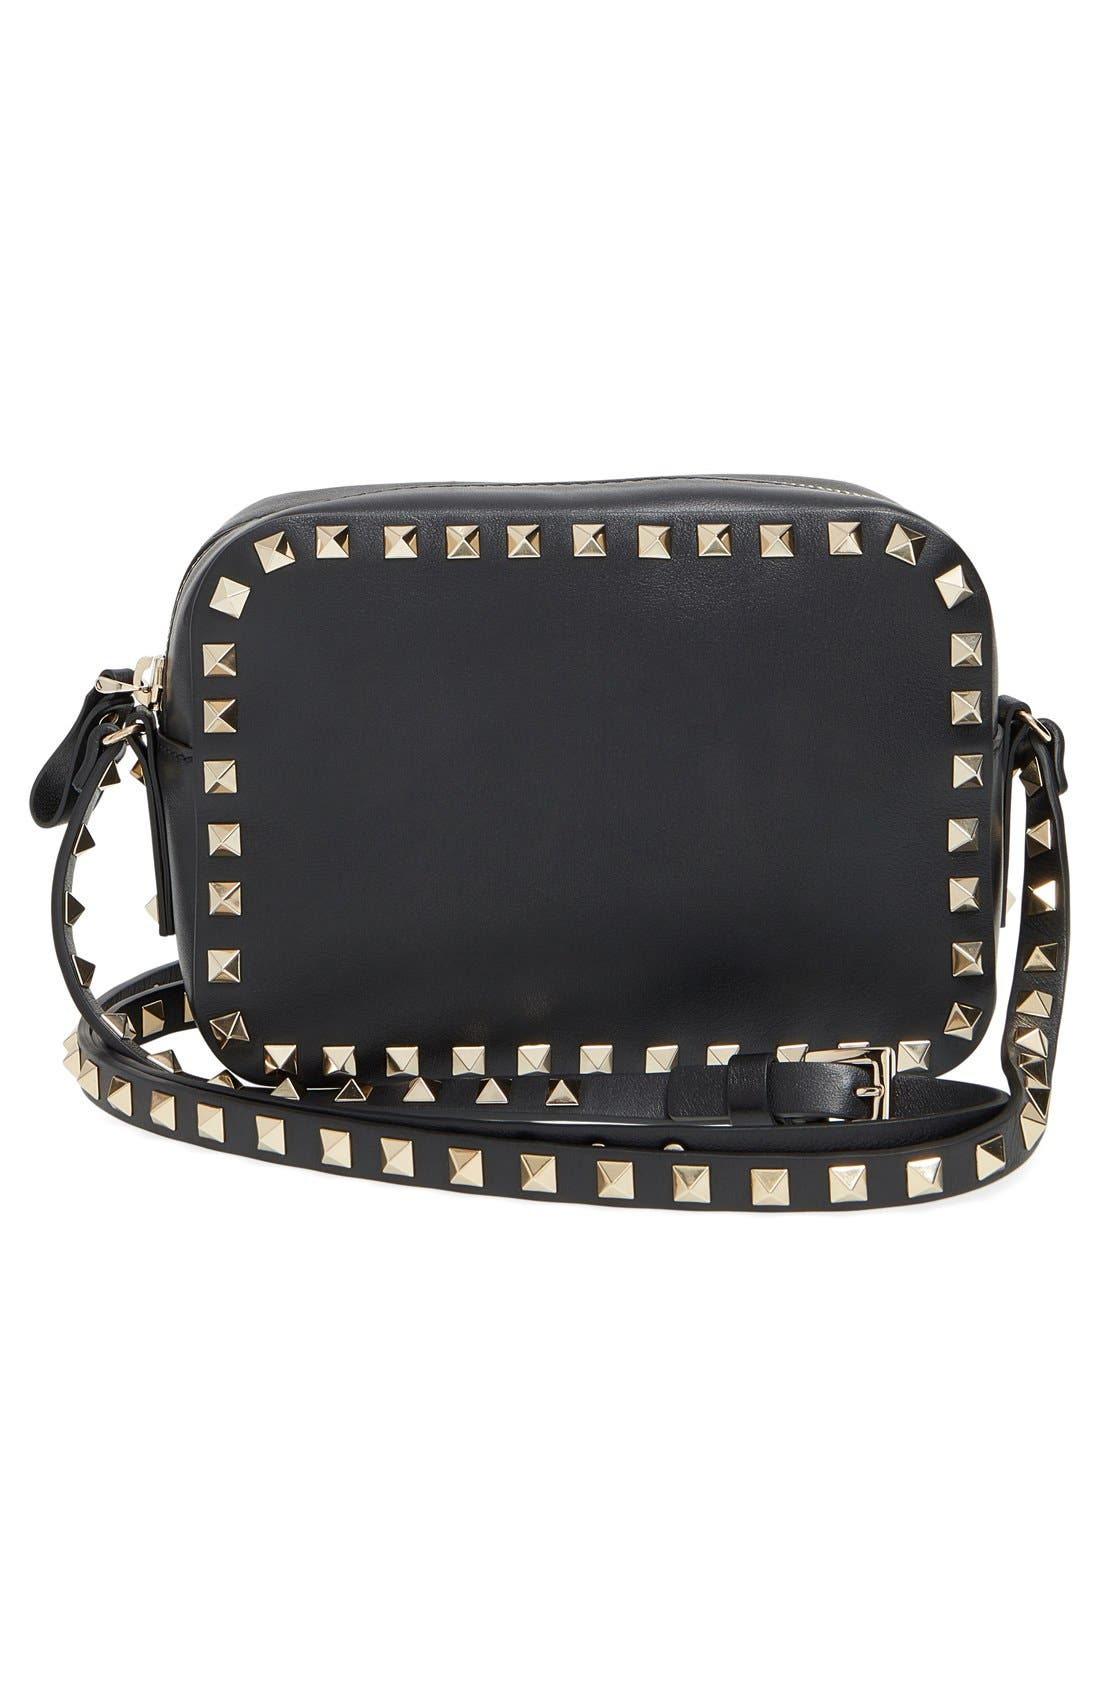 VALENTINO GARAVANI Rockstud Calfskin Leather Camera Crossbody Bag